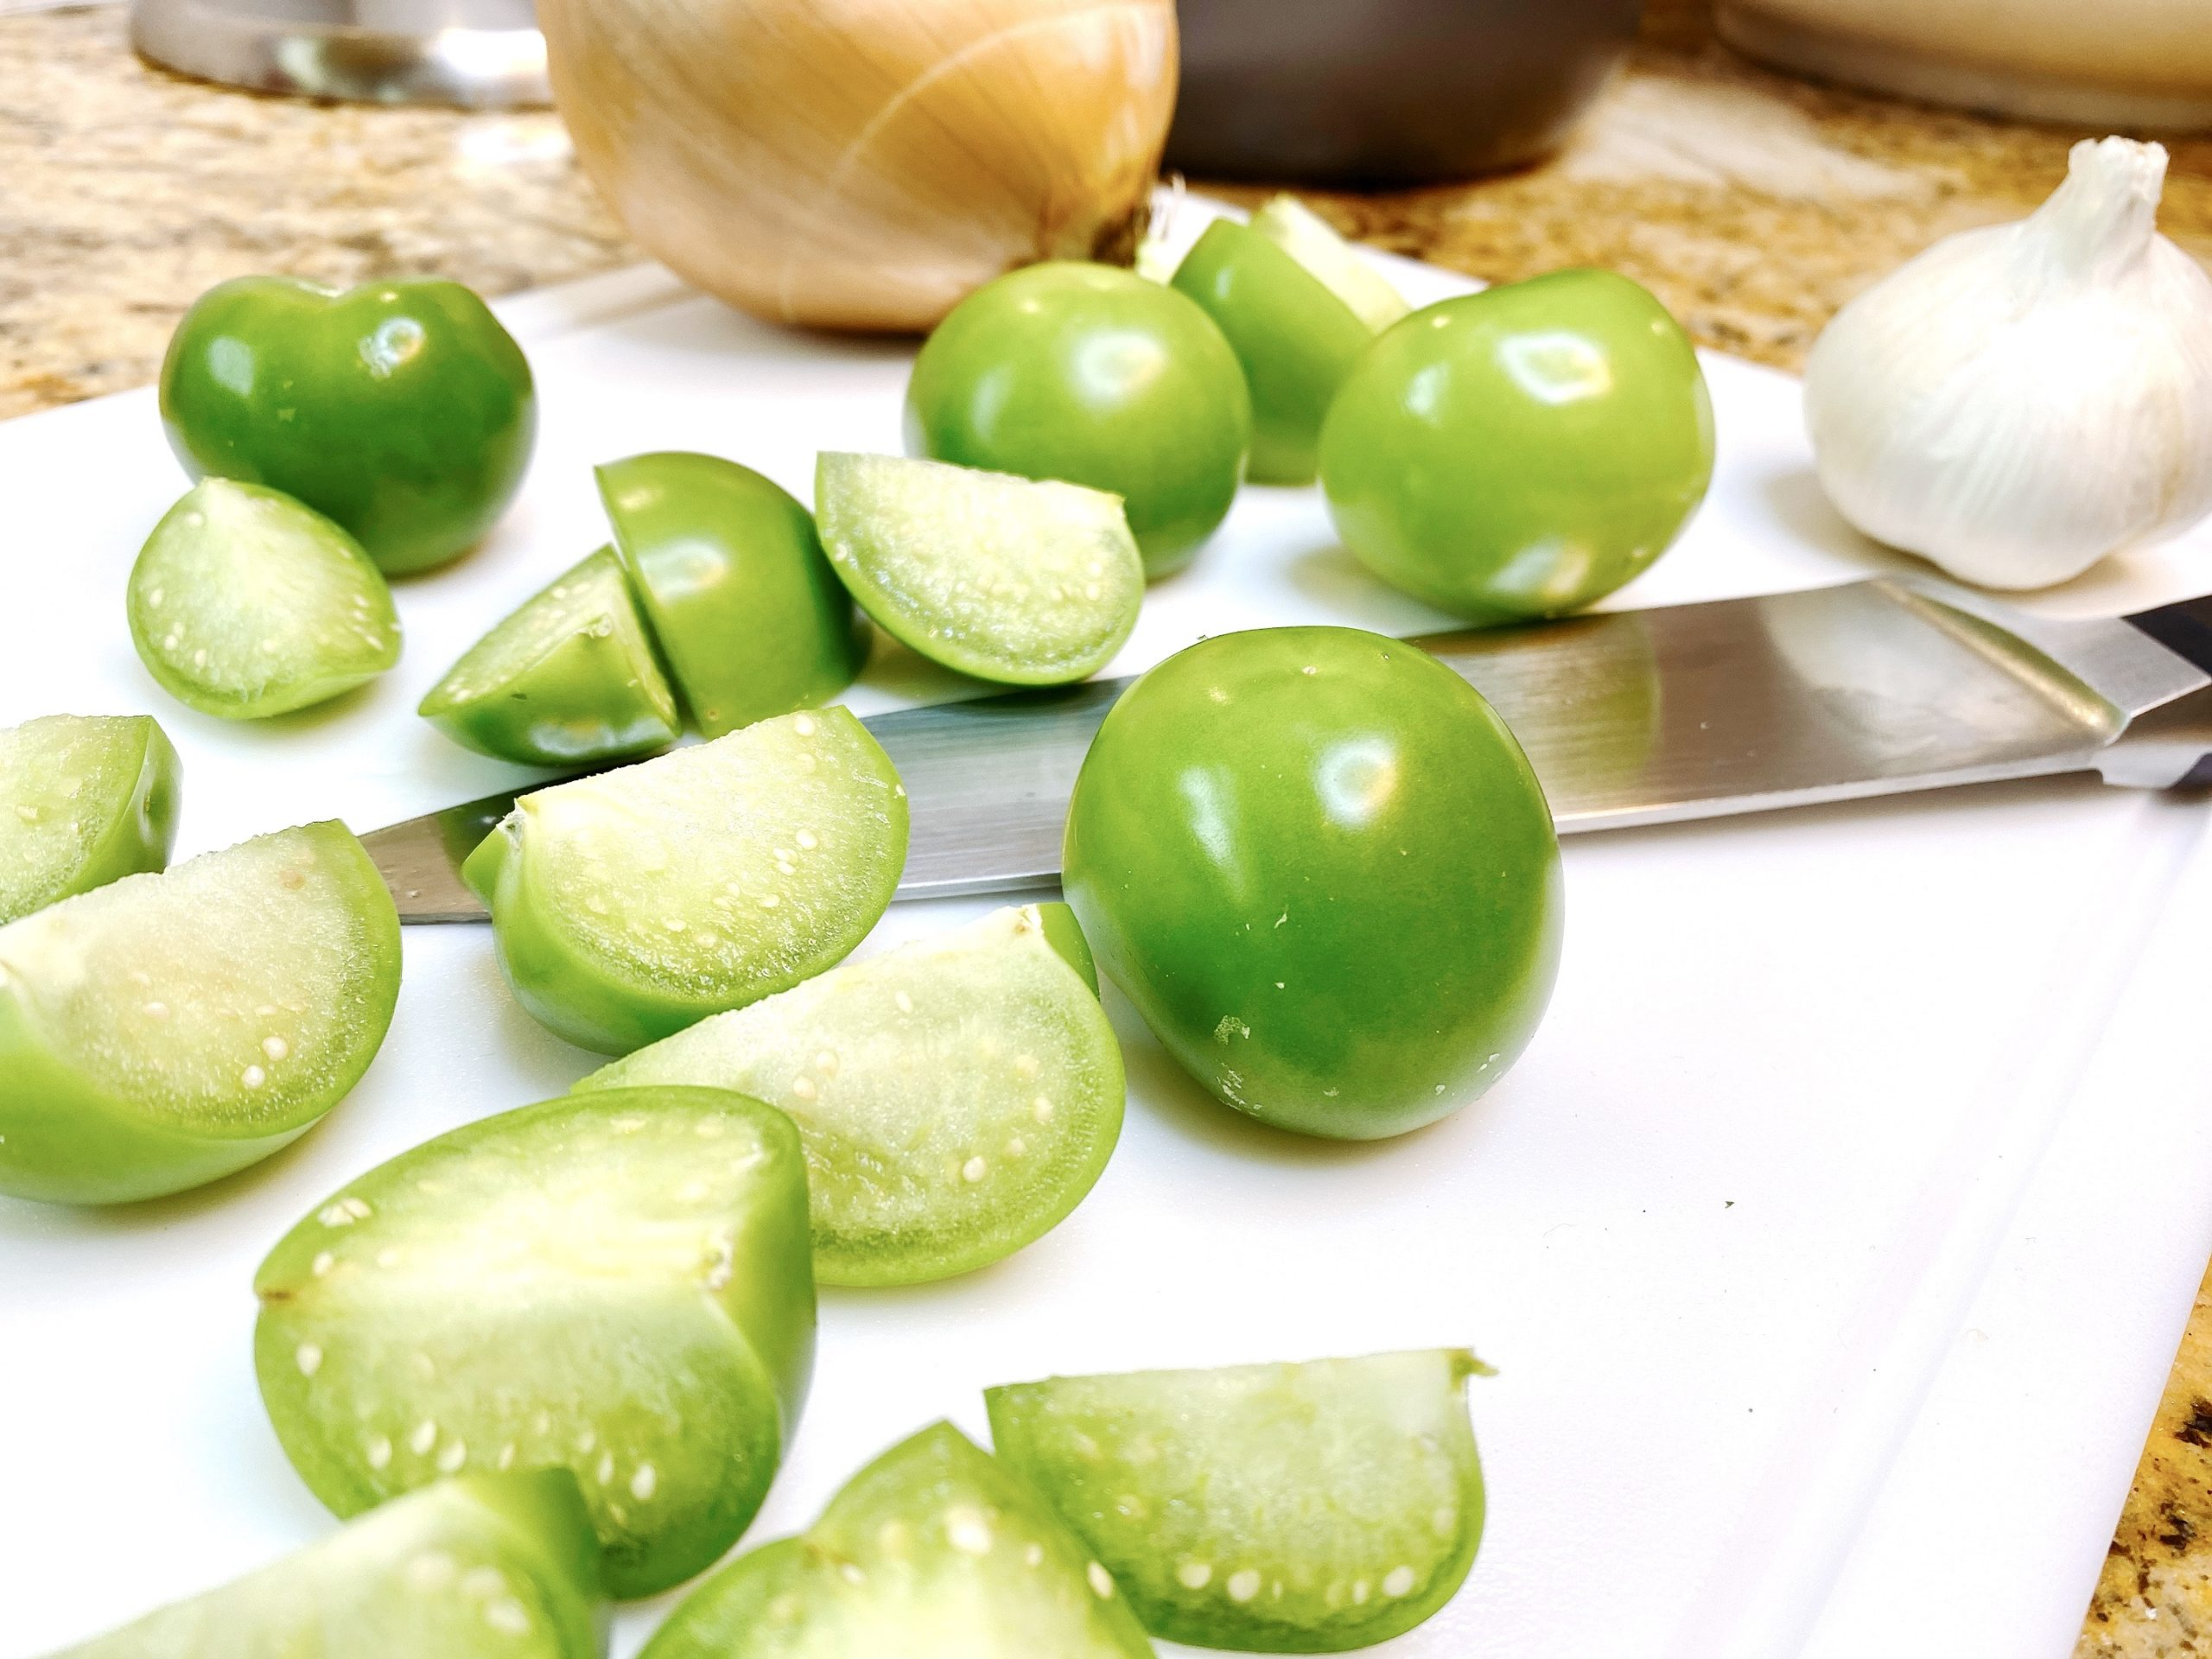 Fresh green tomatillos chopped on cutting board with knife